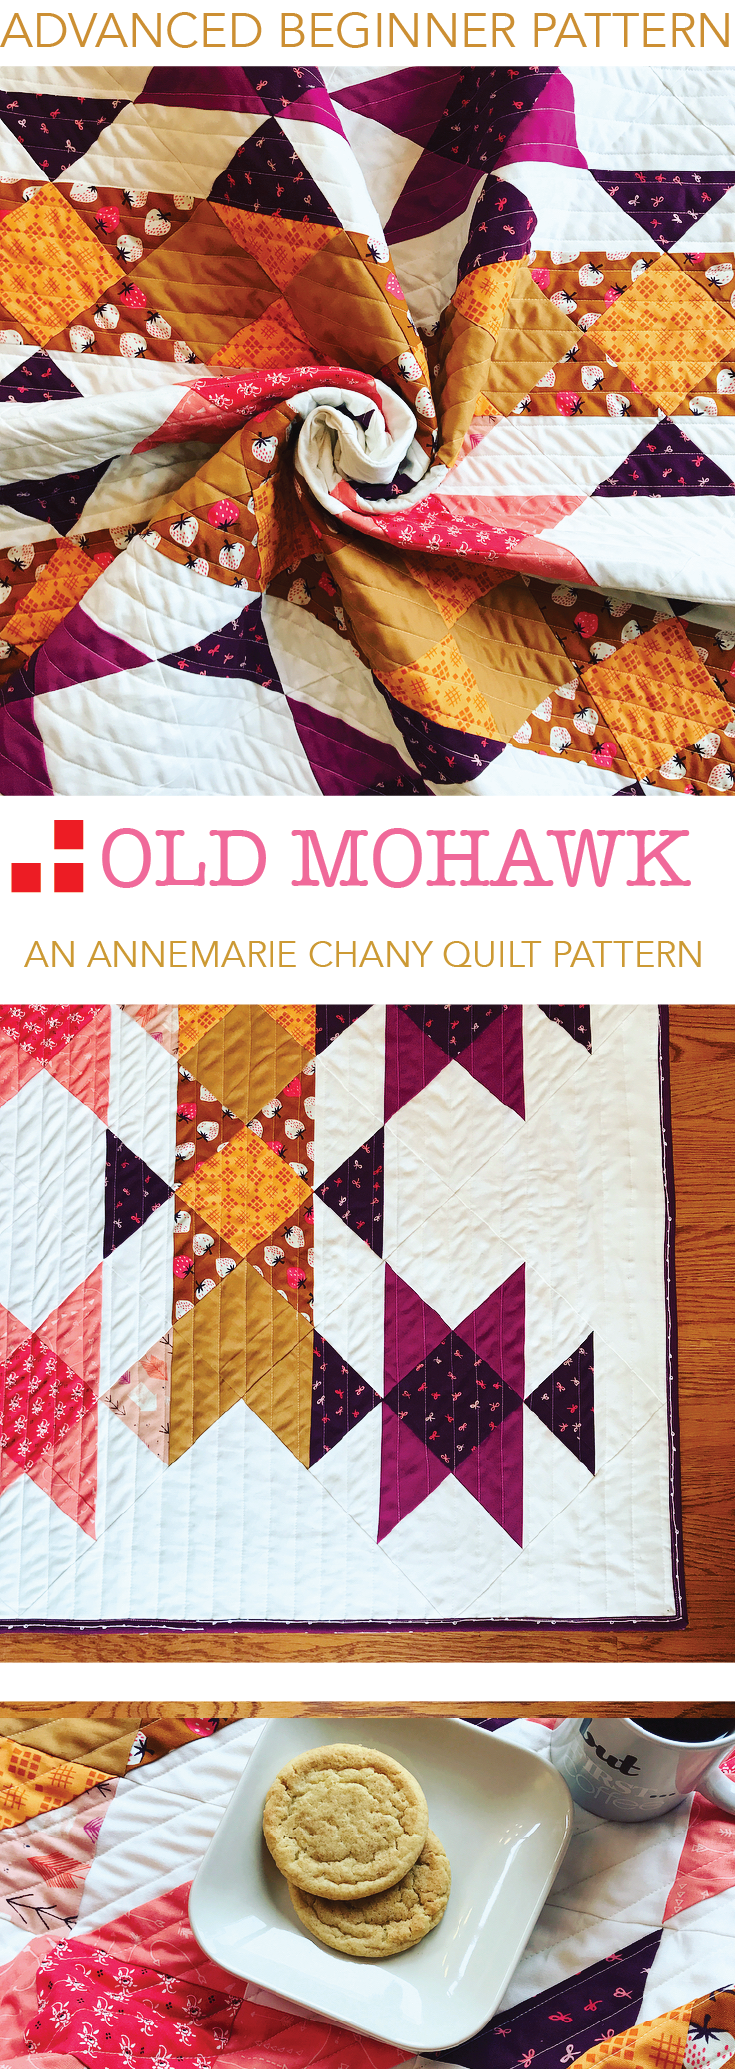 Old Mohawk Quilt Pattern - Beginner Half Square Triangle Quilt Pattern